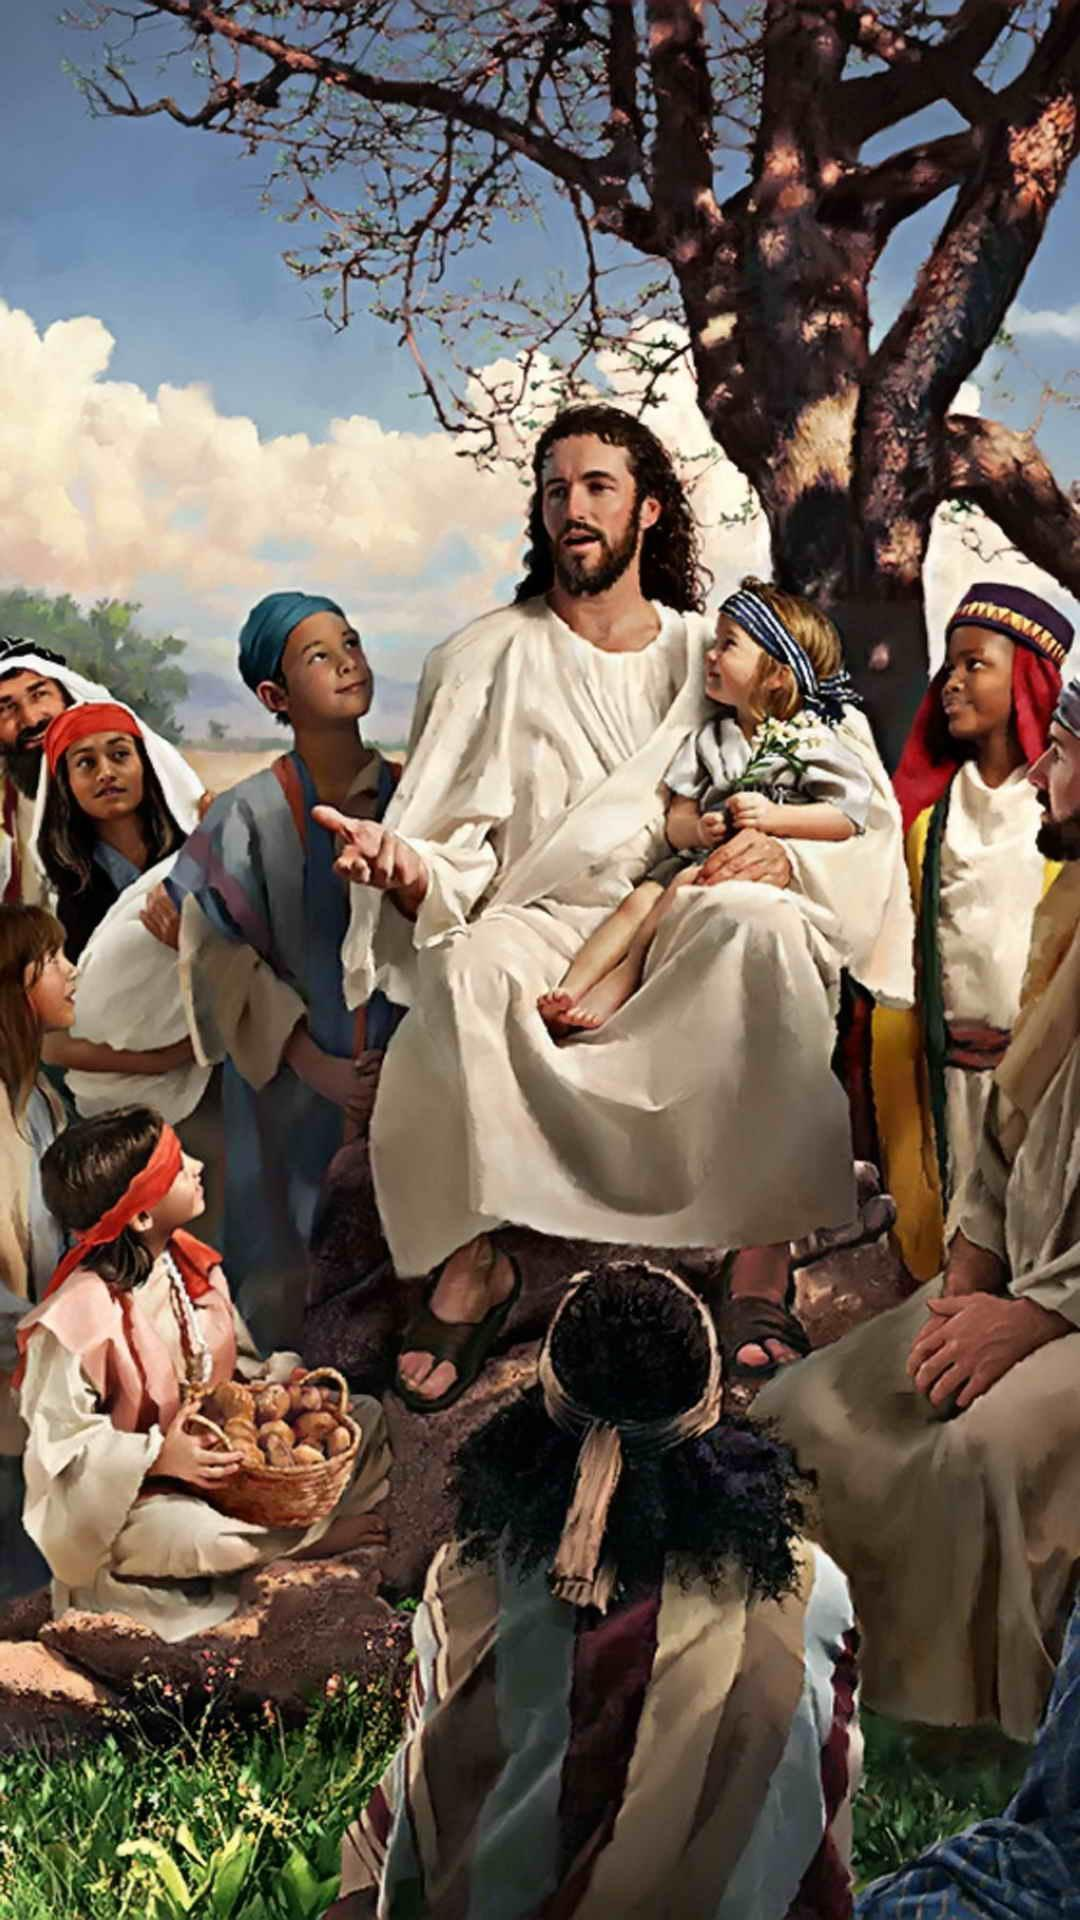 Jesus Christ Hd Android Wallpapers - Wallpaper Cave